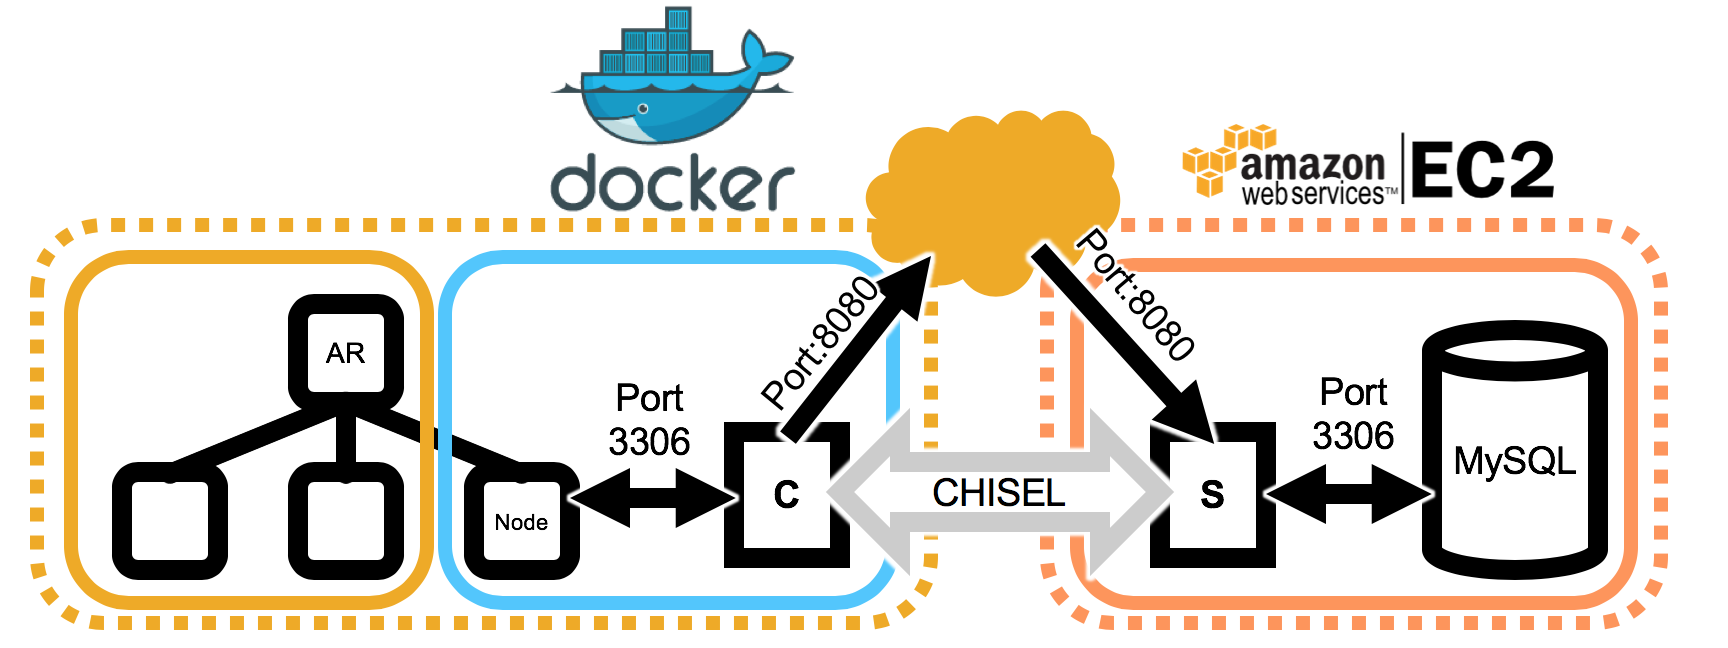 Connect To Mysql In Docker